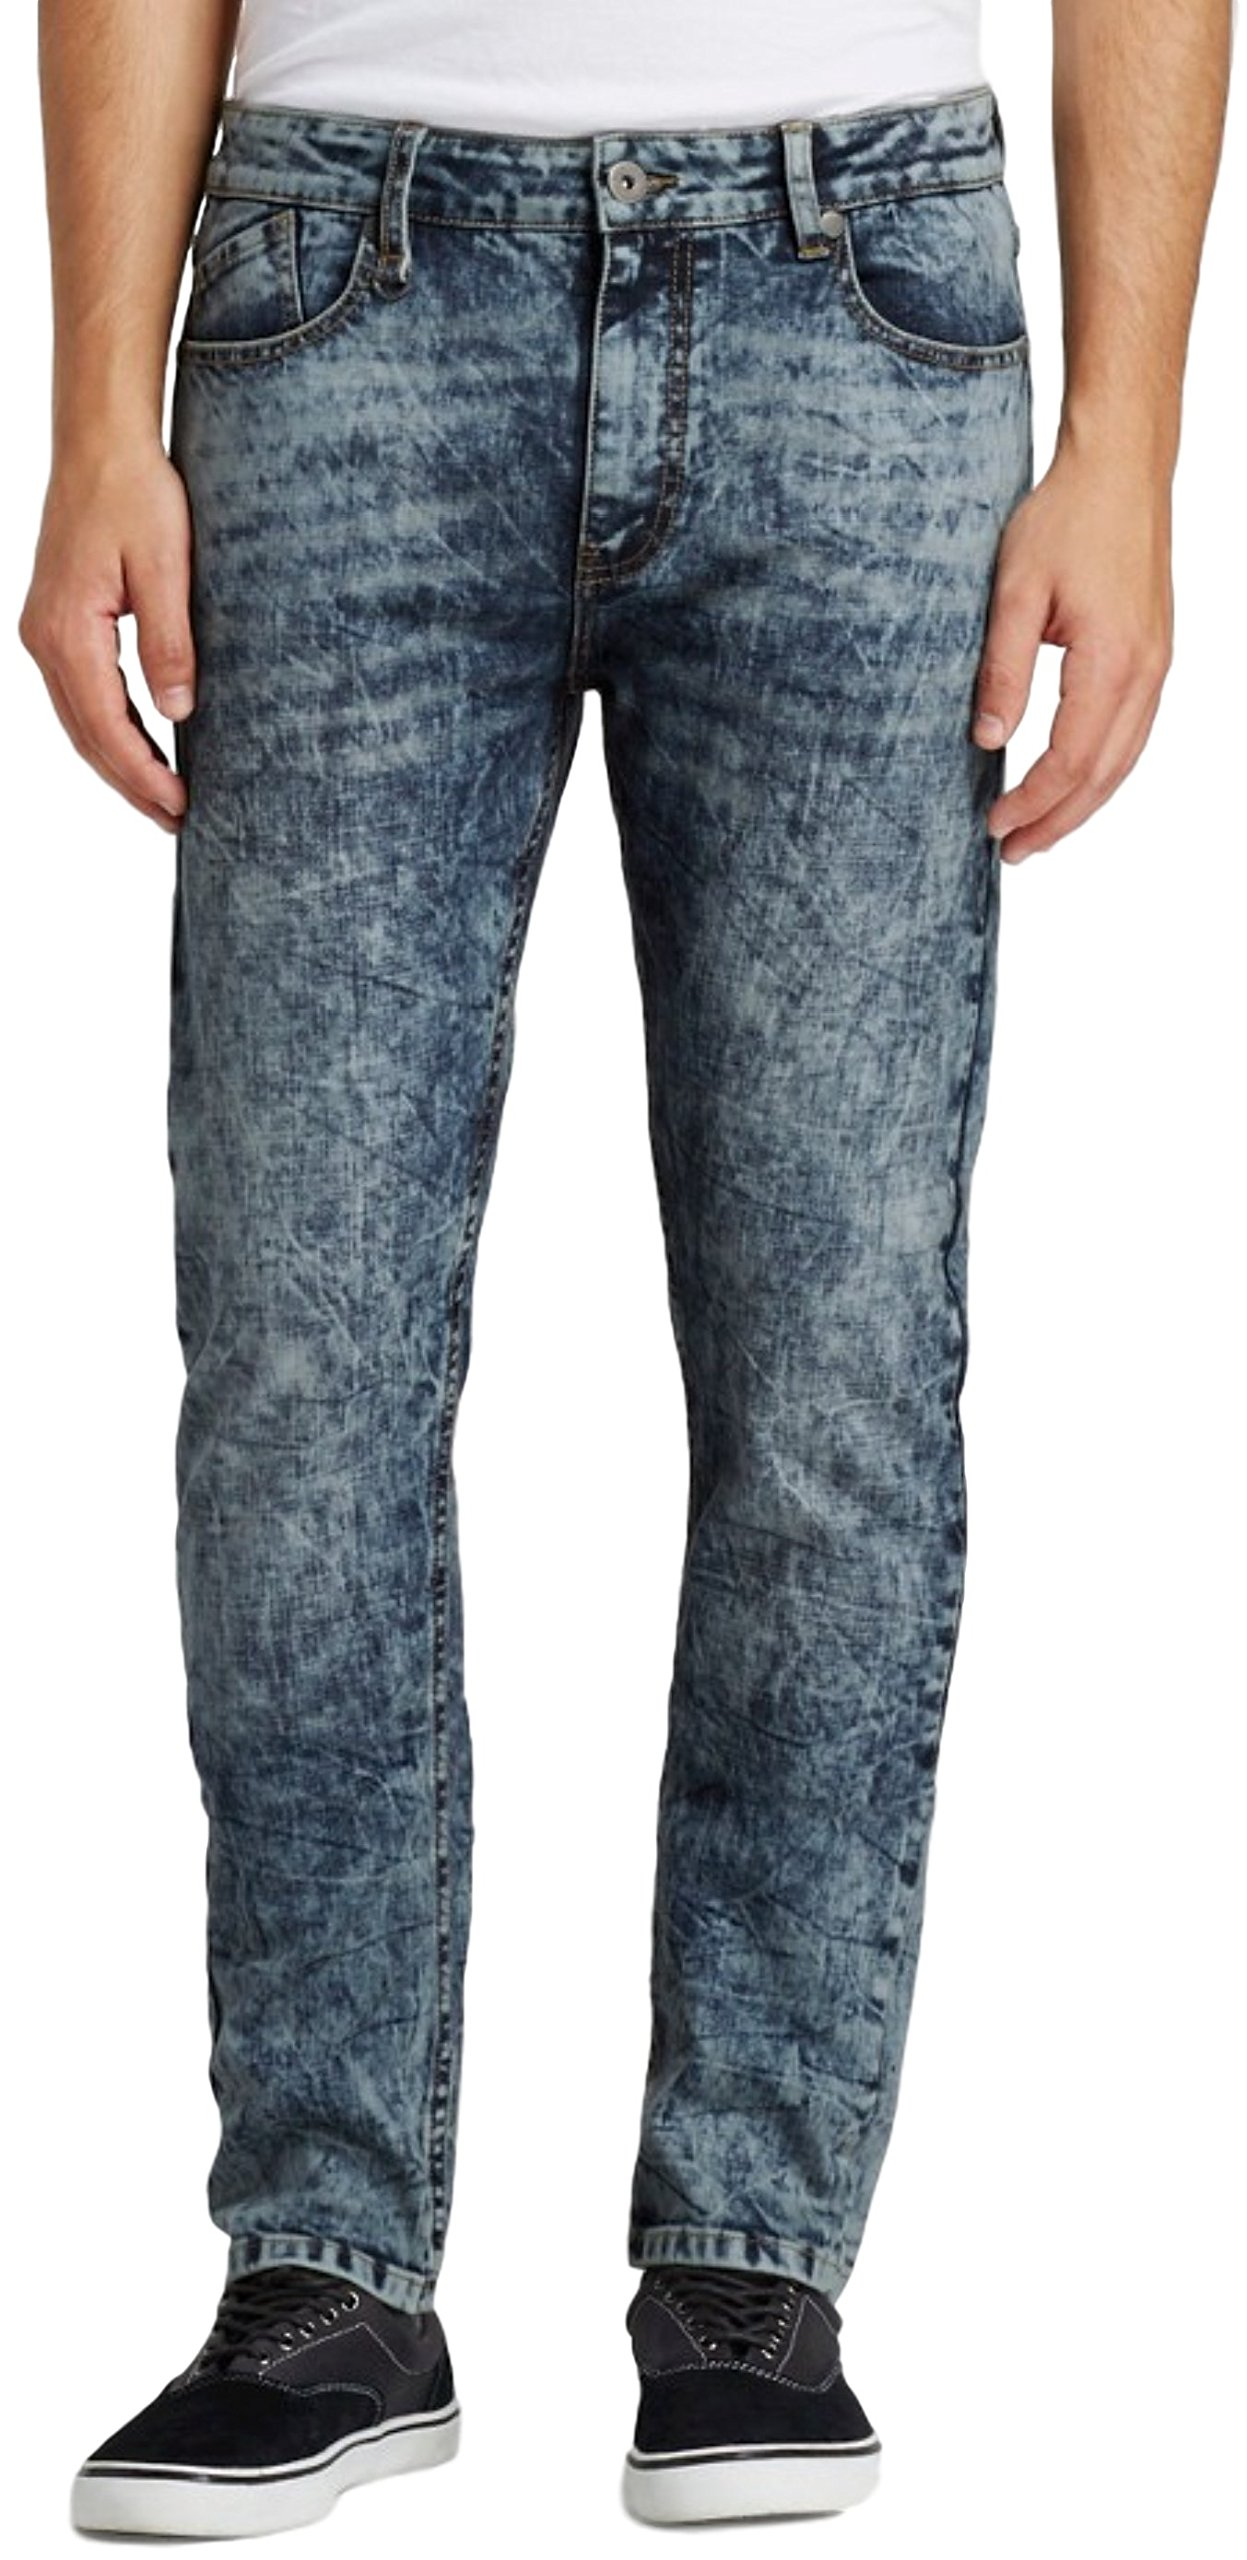 Modern Threads by Well Versed Men's Skinny Fit Jeans (28X30, Indigo Acid) by Modern Threads by Well Versed (Image #1)